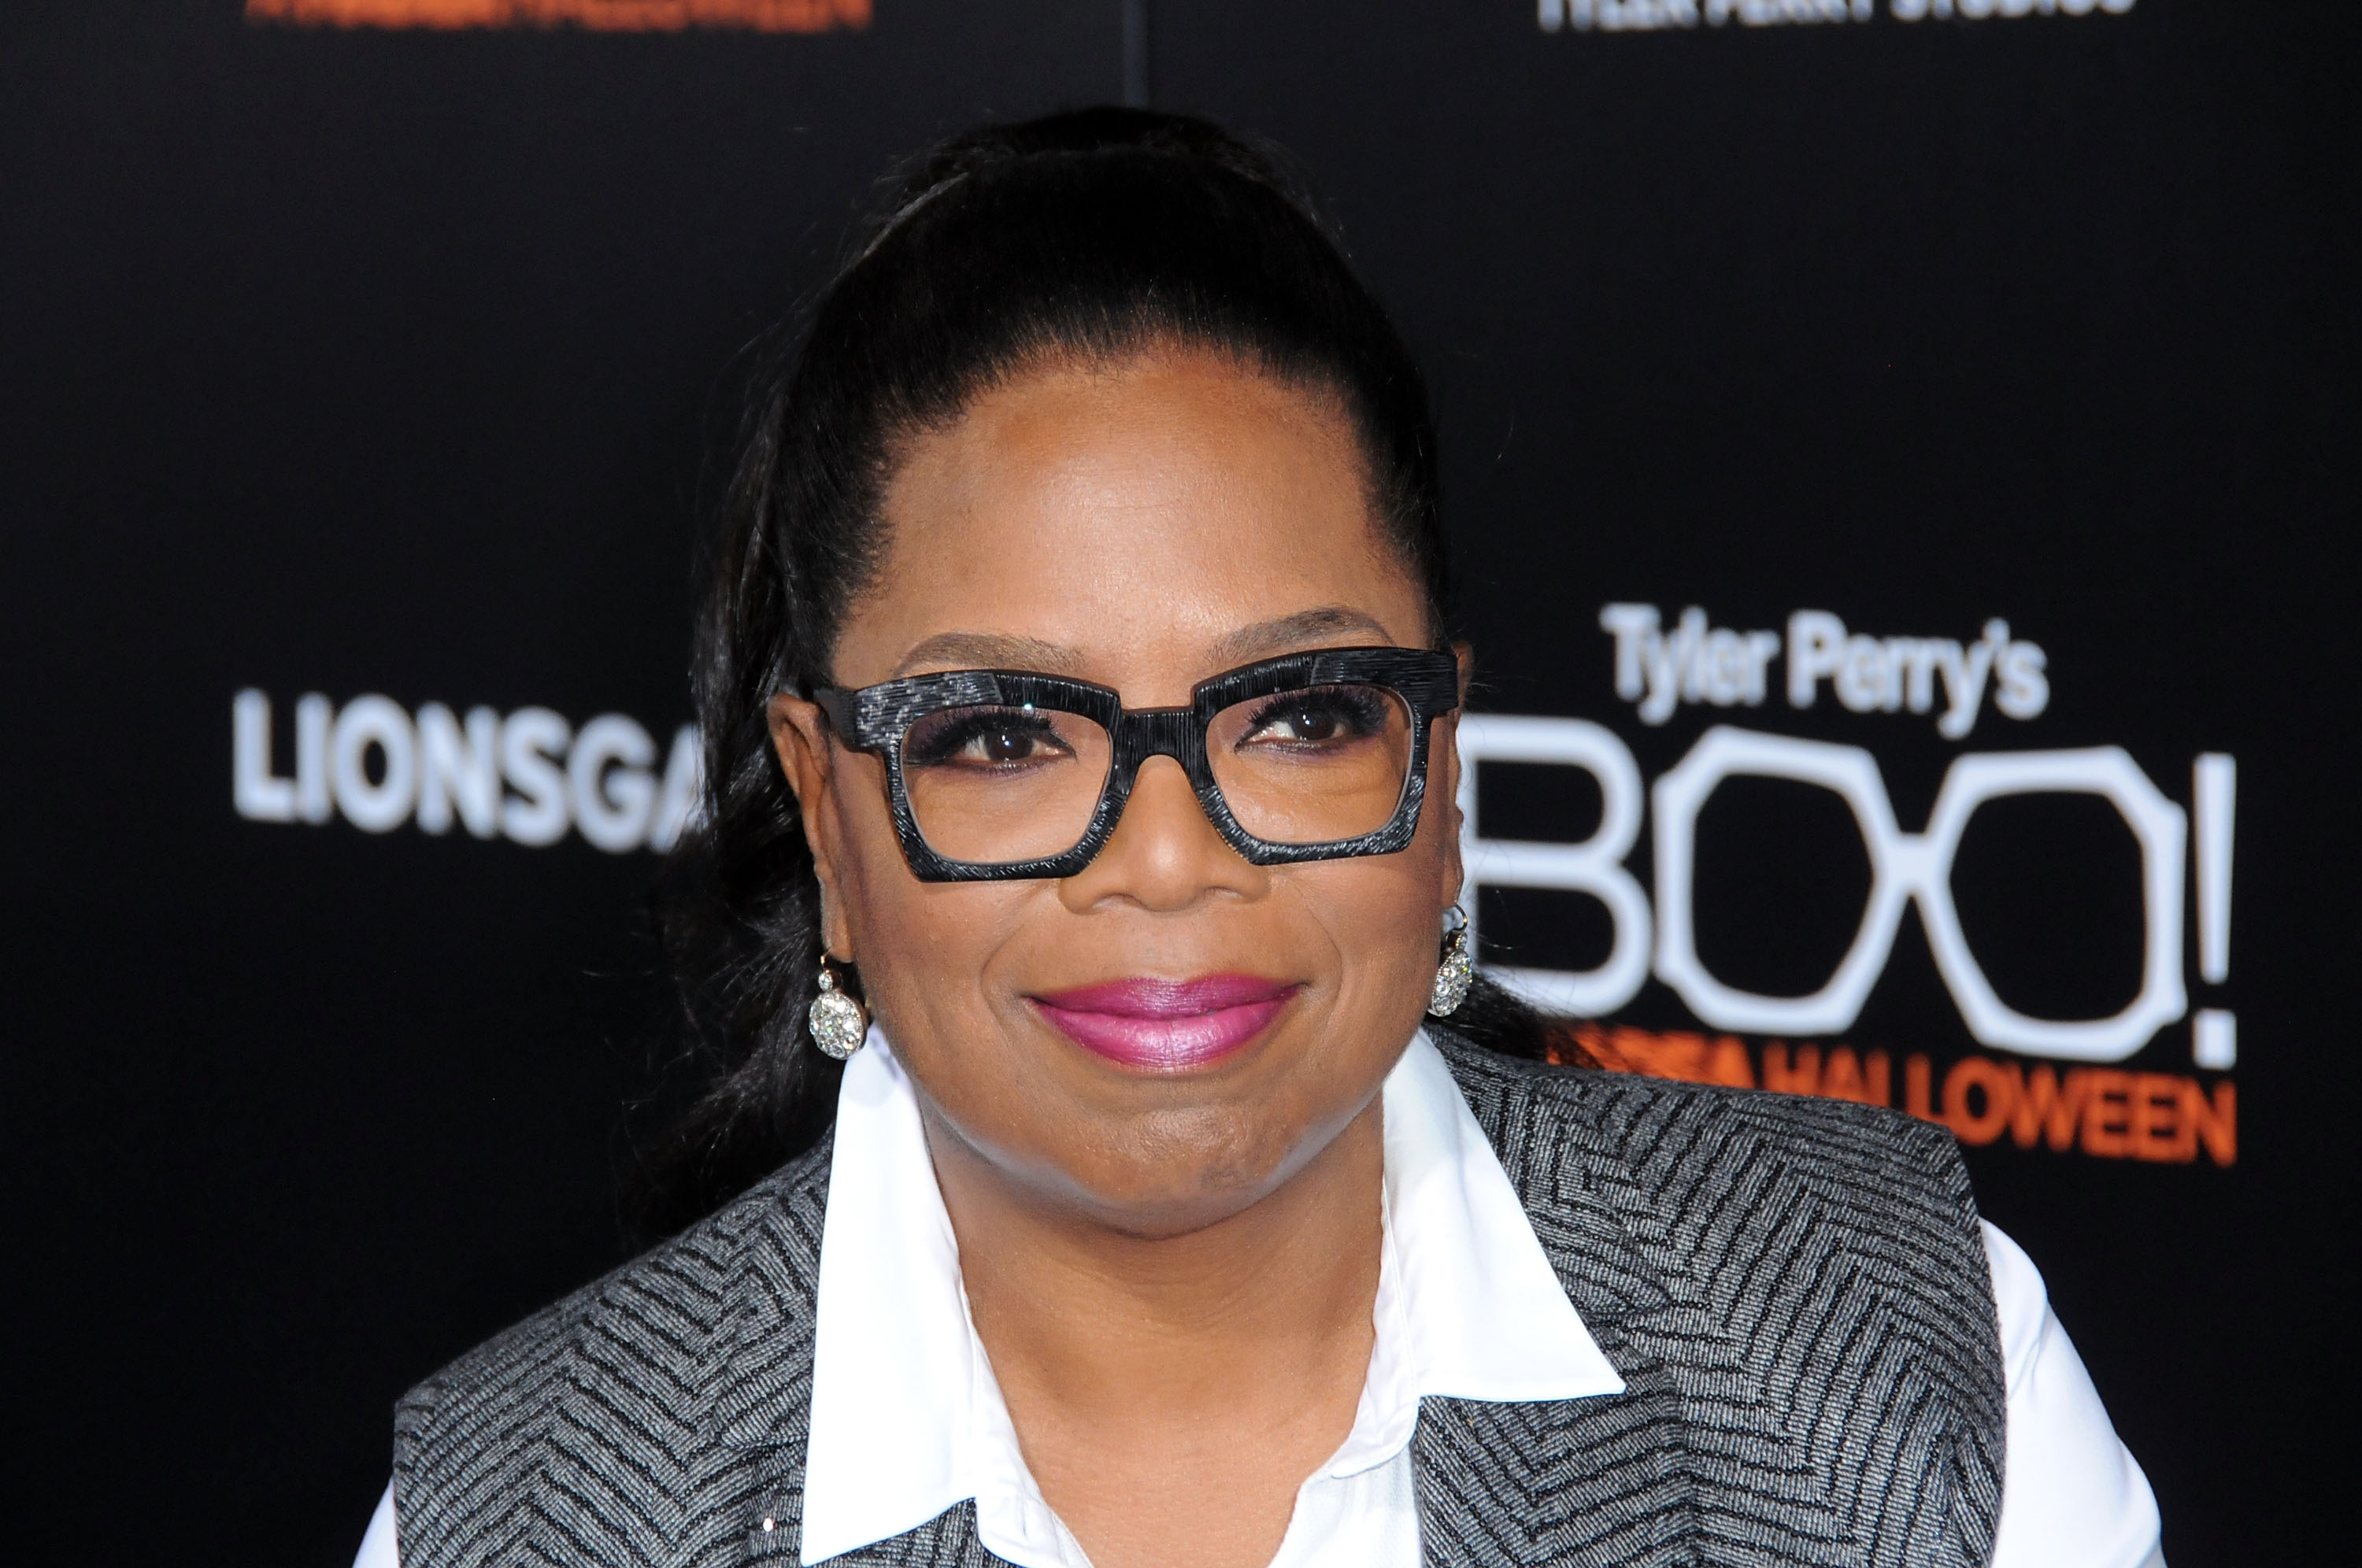 Michael Moore wants Oprah to run for president next time and we'd be alright with that